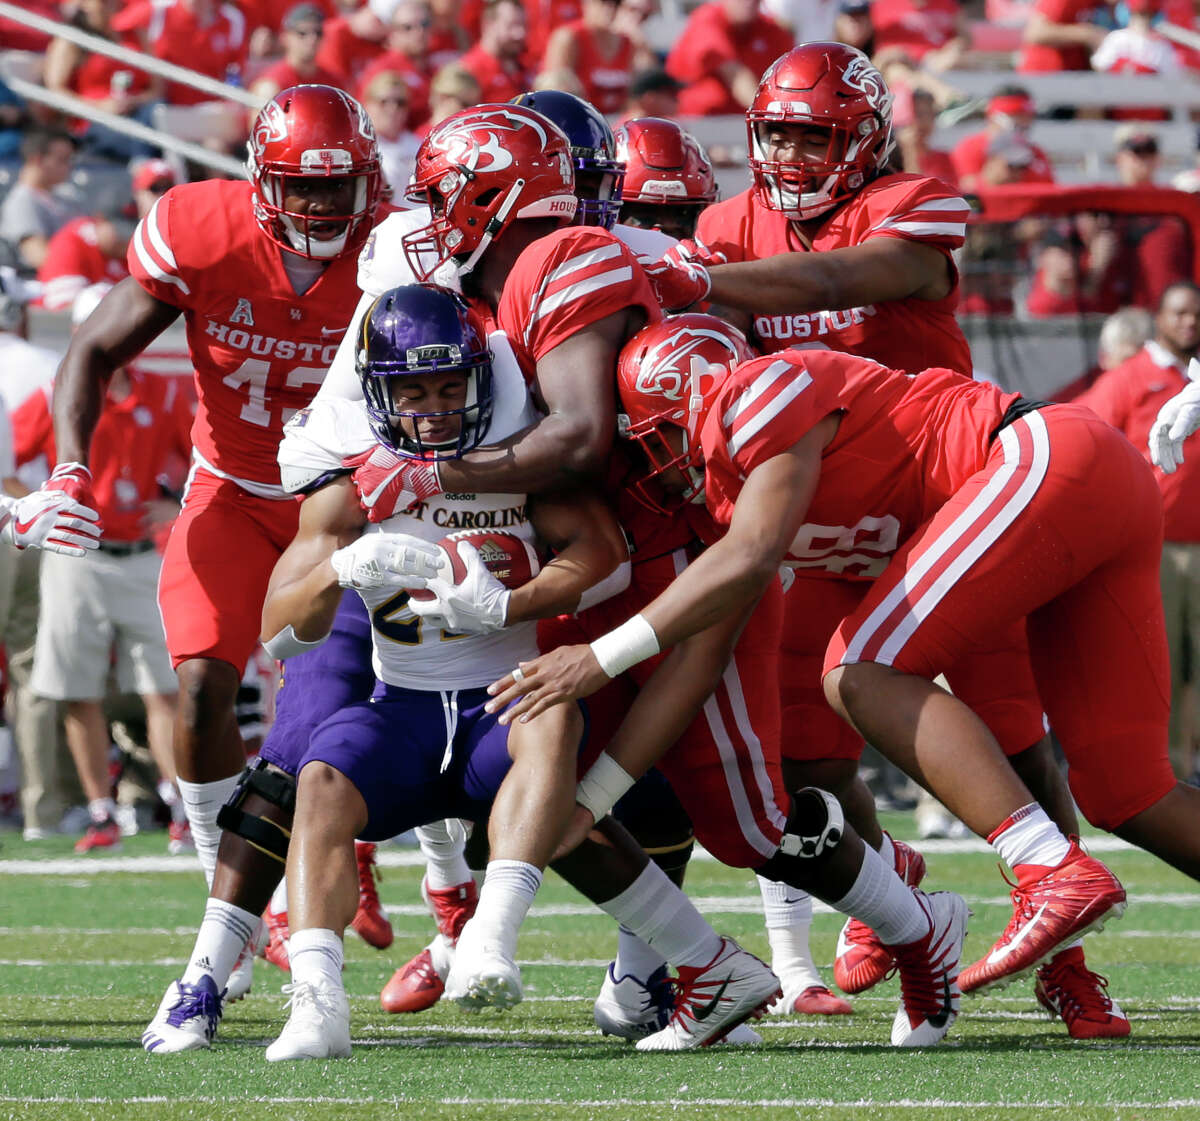 East Carolina running back Devin Anderson (25) is surrounded on a tackle by Houston's Leroy Godfrey (43), Ed Oliver (10), Emeke Egbule (8) and defensive lineman Payton Turner (98) in the first half of their game, Nov. 4, 2017, in Houston, TX. (Michael Wyke / For the Chronicle)